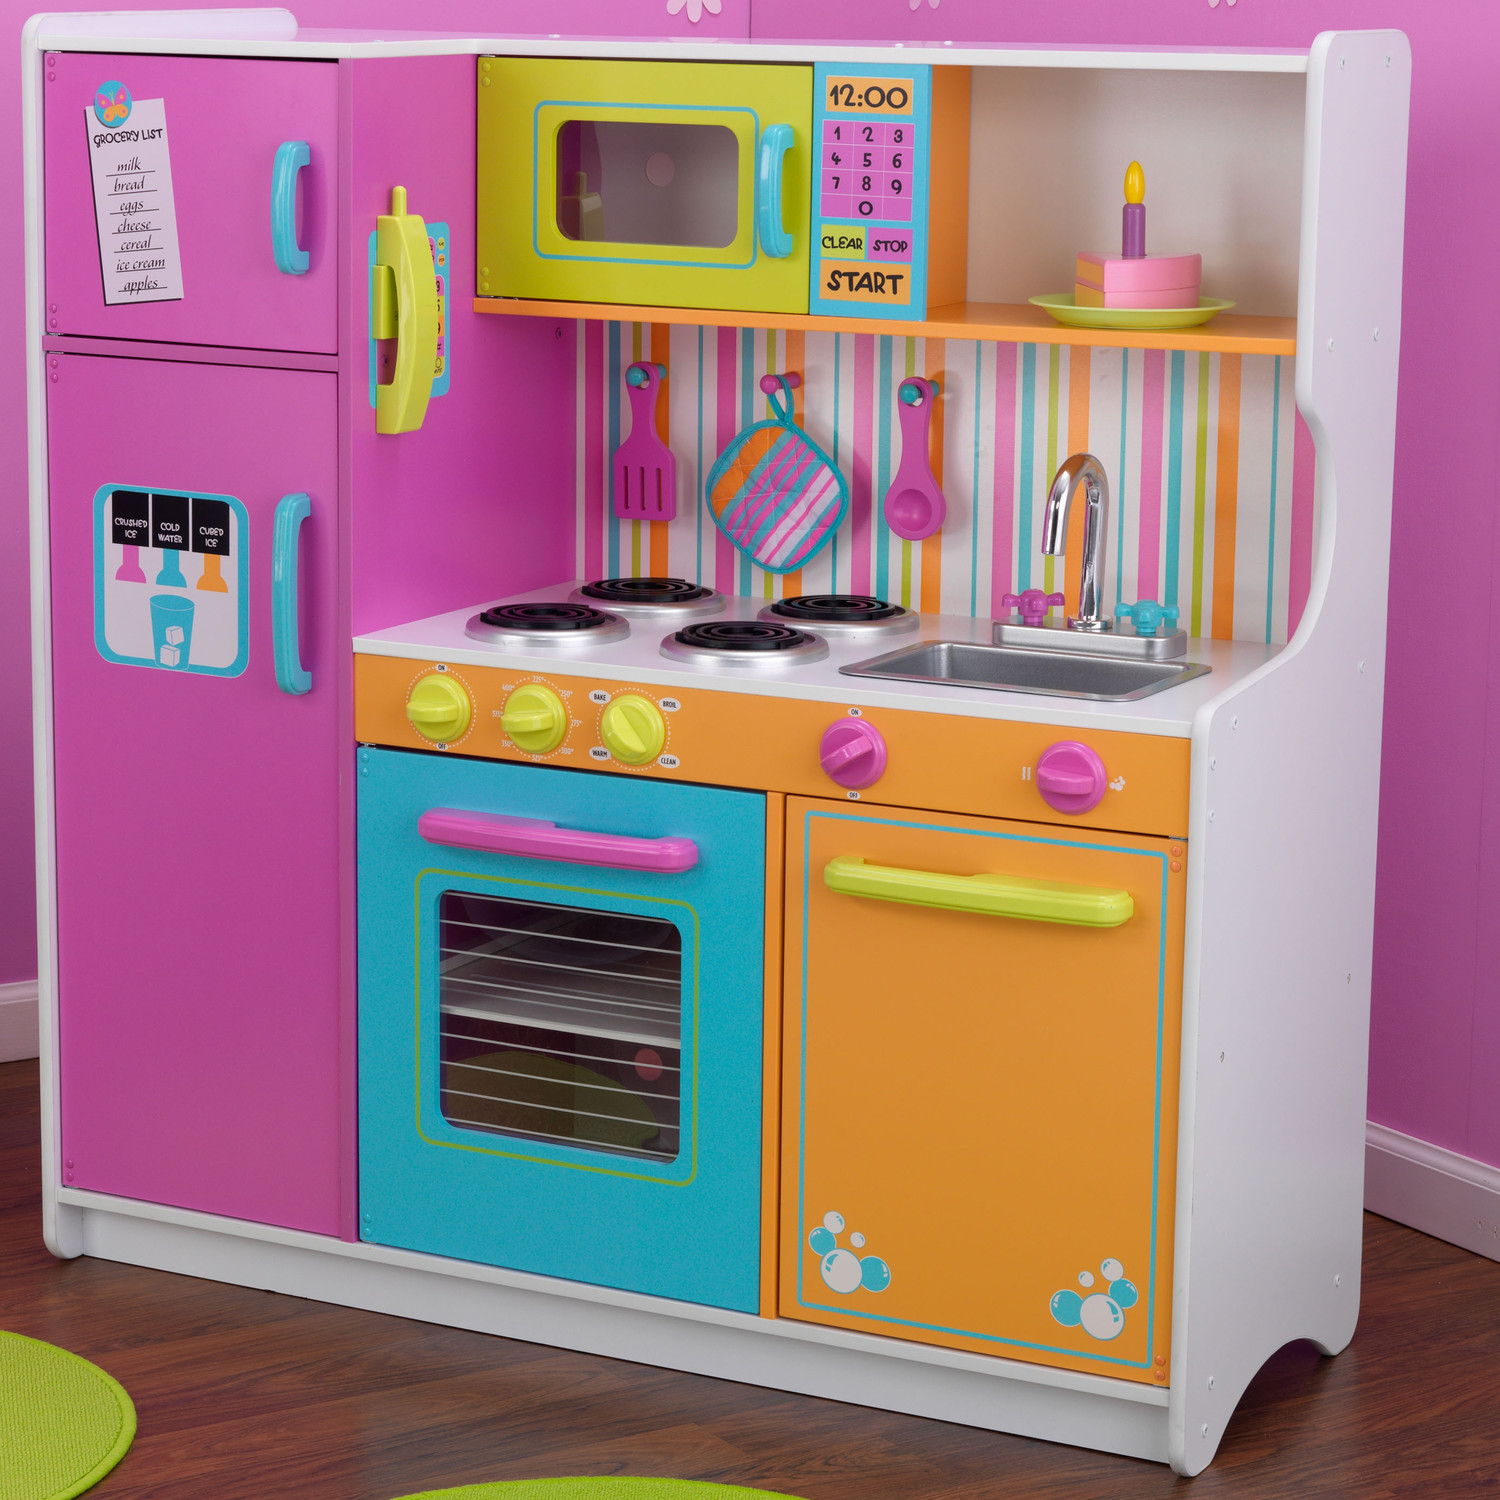 Indigo canada toy sale save 59 off kidkraft deluxe for Kitchen set at toys r us